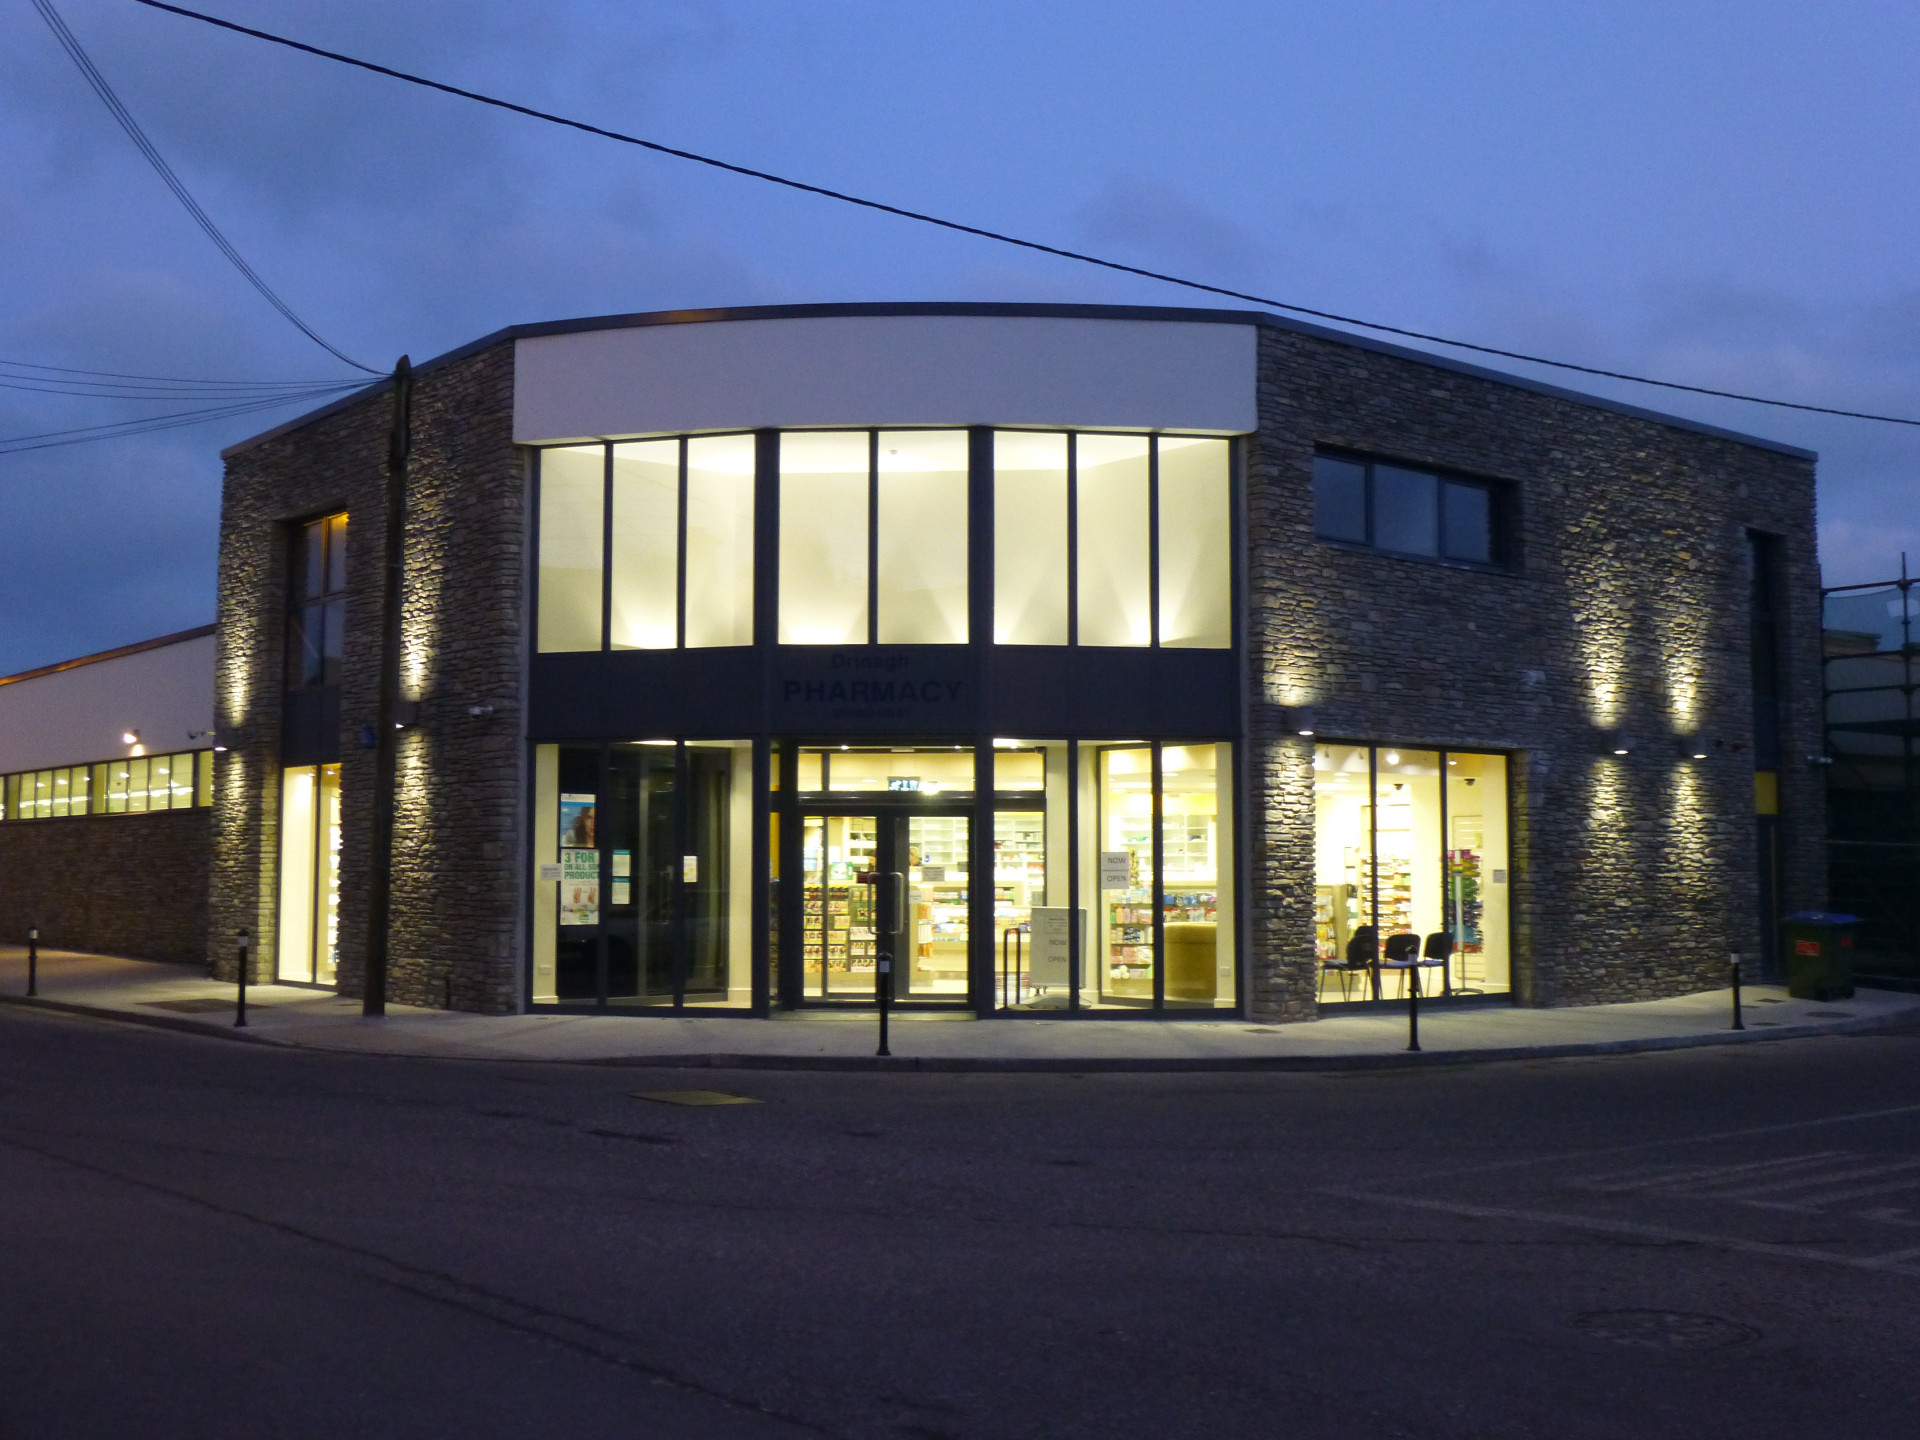 Drinagh Co-Op Retail Units, Dunmanway